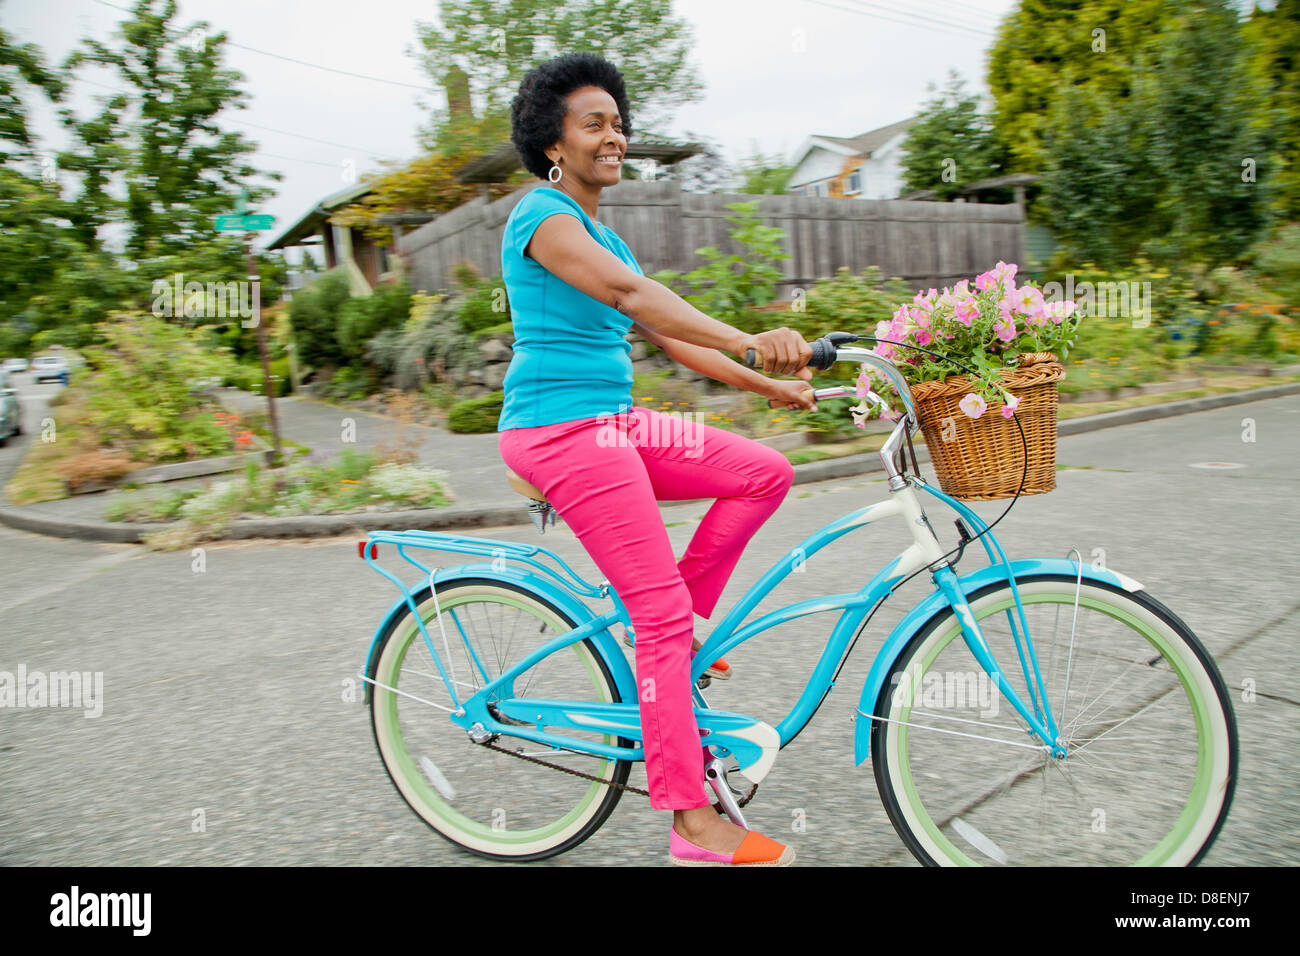 Woman riding retro bicycle with flower basket Stock Photo